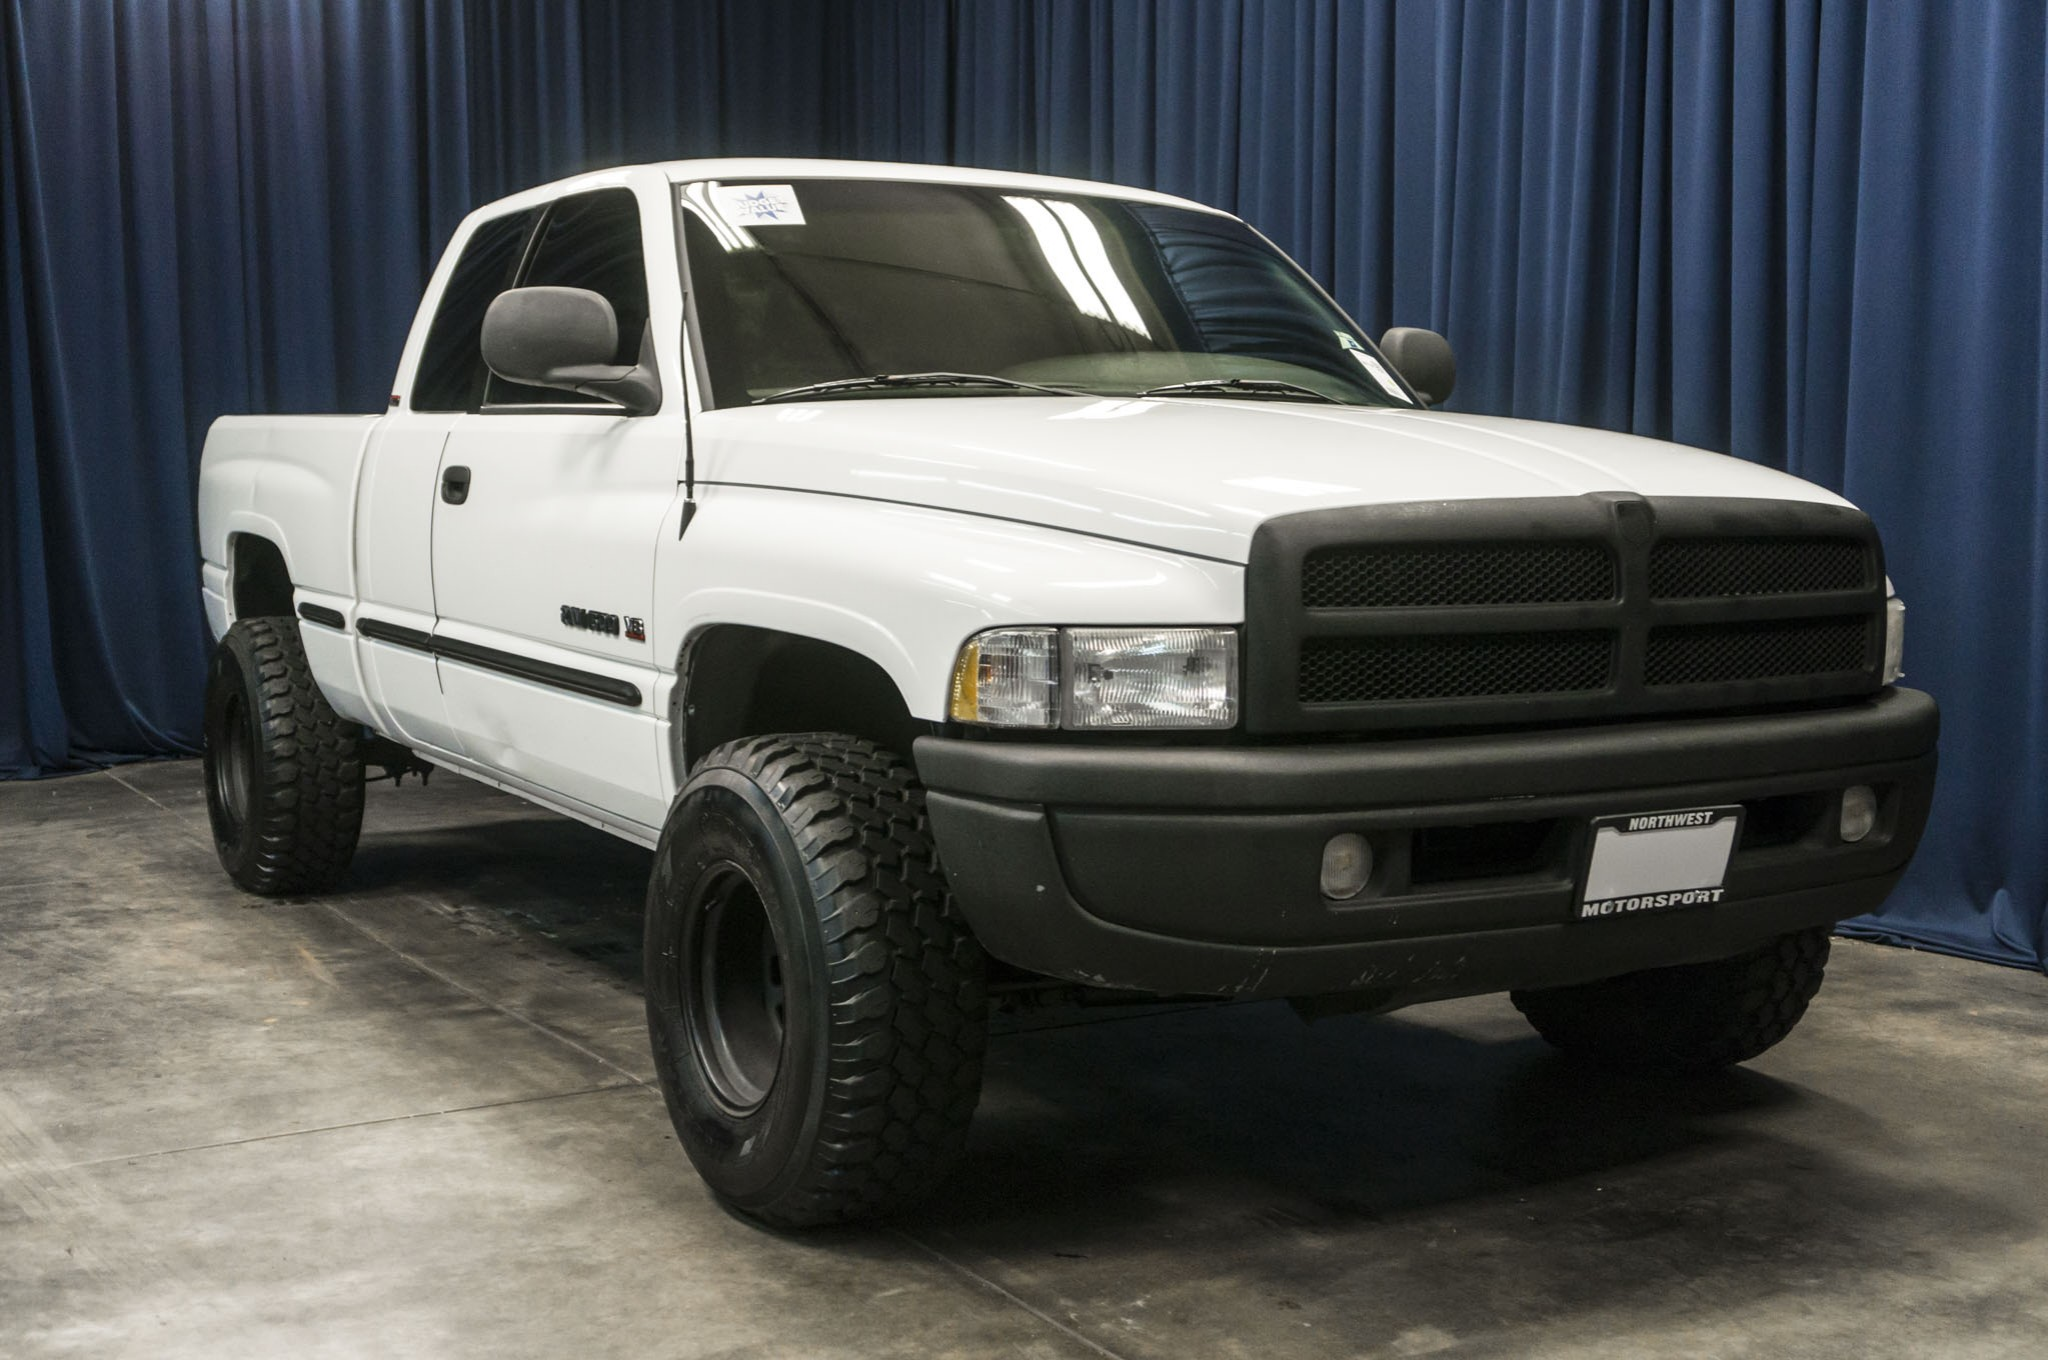 used lifted 1998 dodge ram 1500 slt 4x4 truck for sale. Black Bedroom Furniture Sets. Home Design Ideas